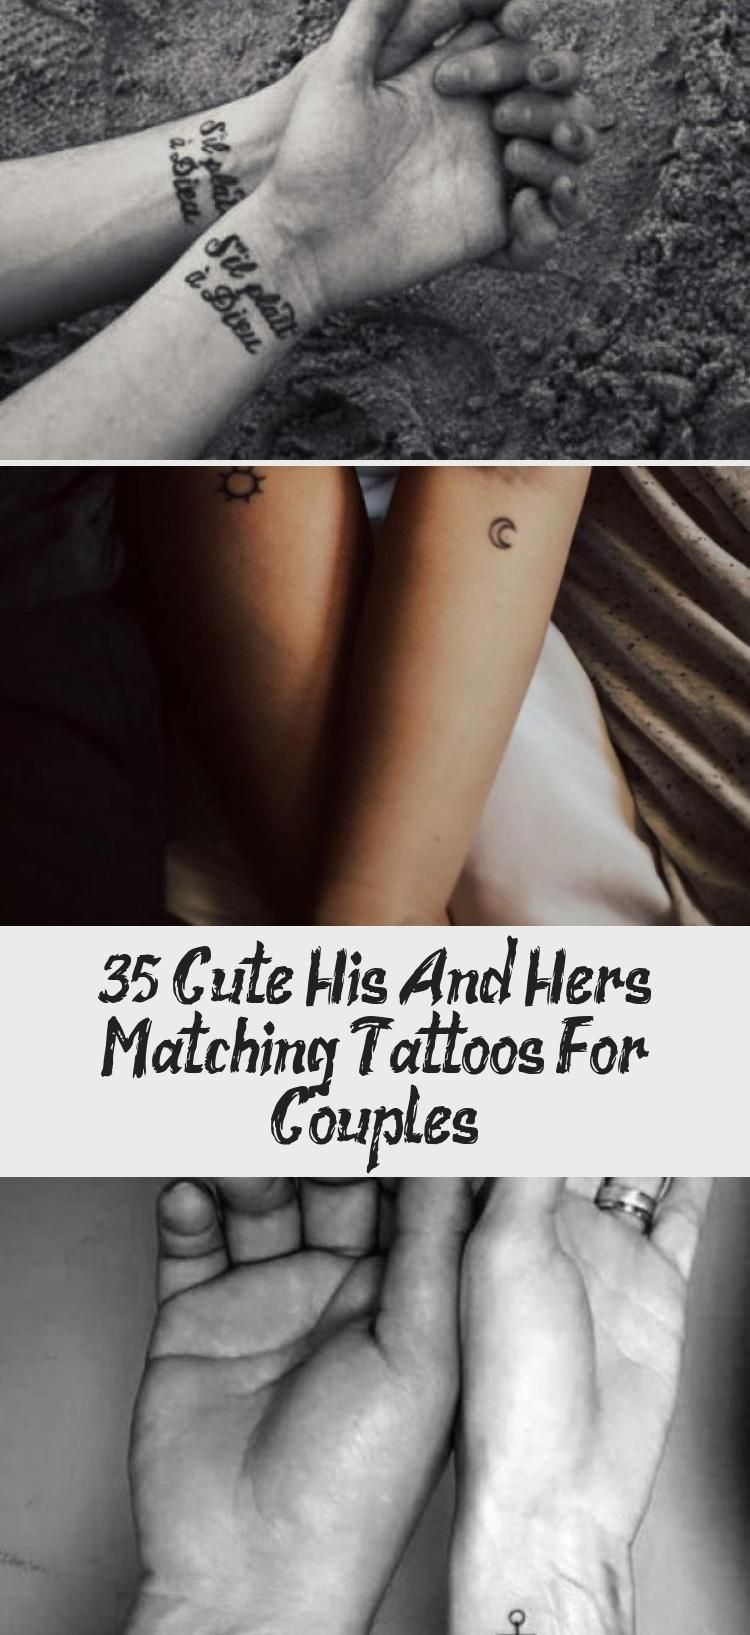 37+ Amazing His and her tattoos lions image ideas